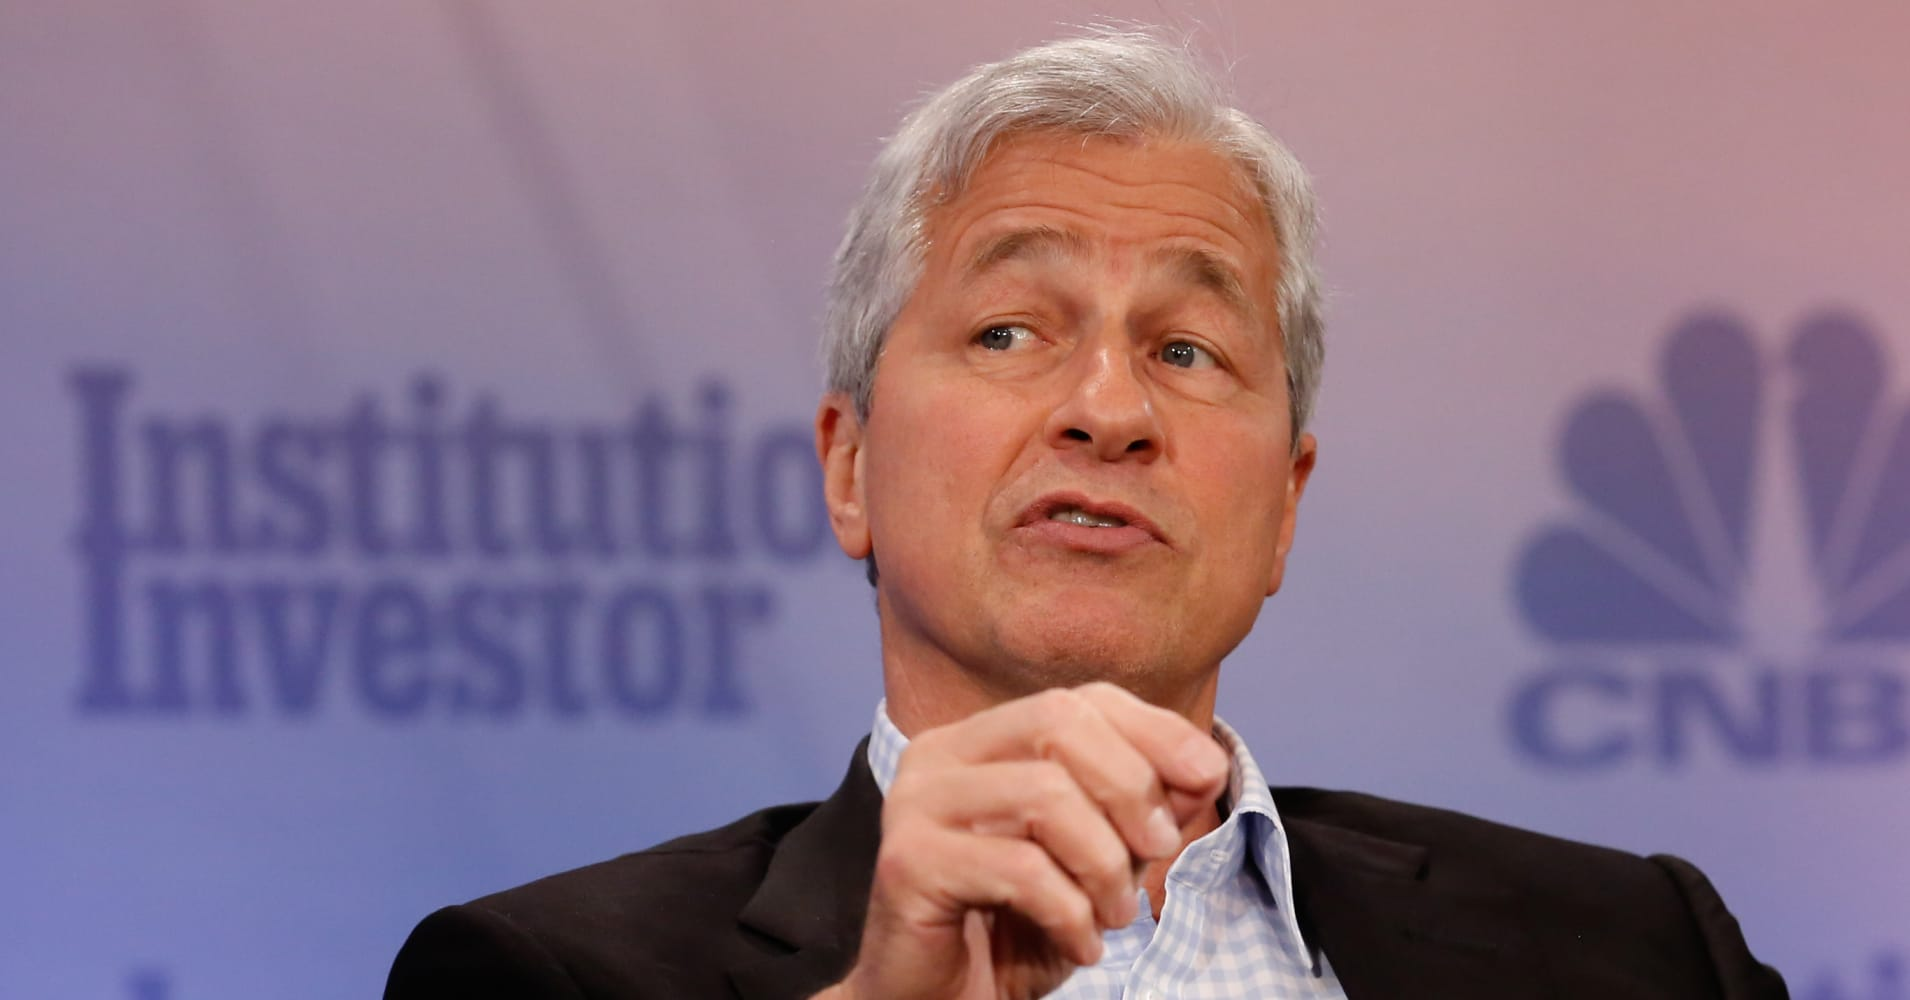 Why doesnt jp morgan invest in crypto